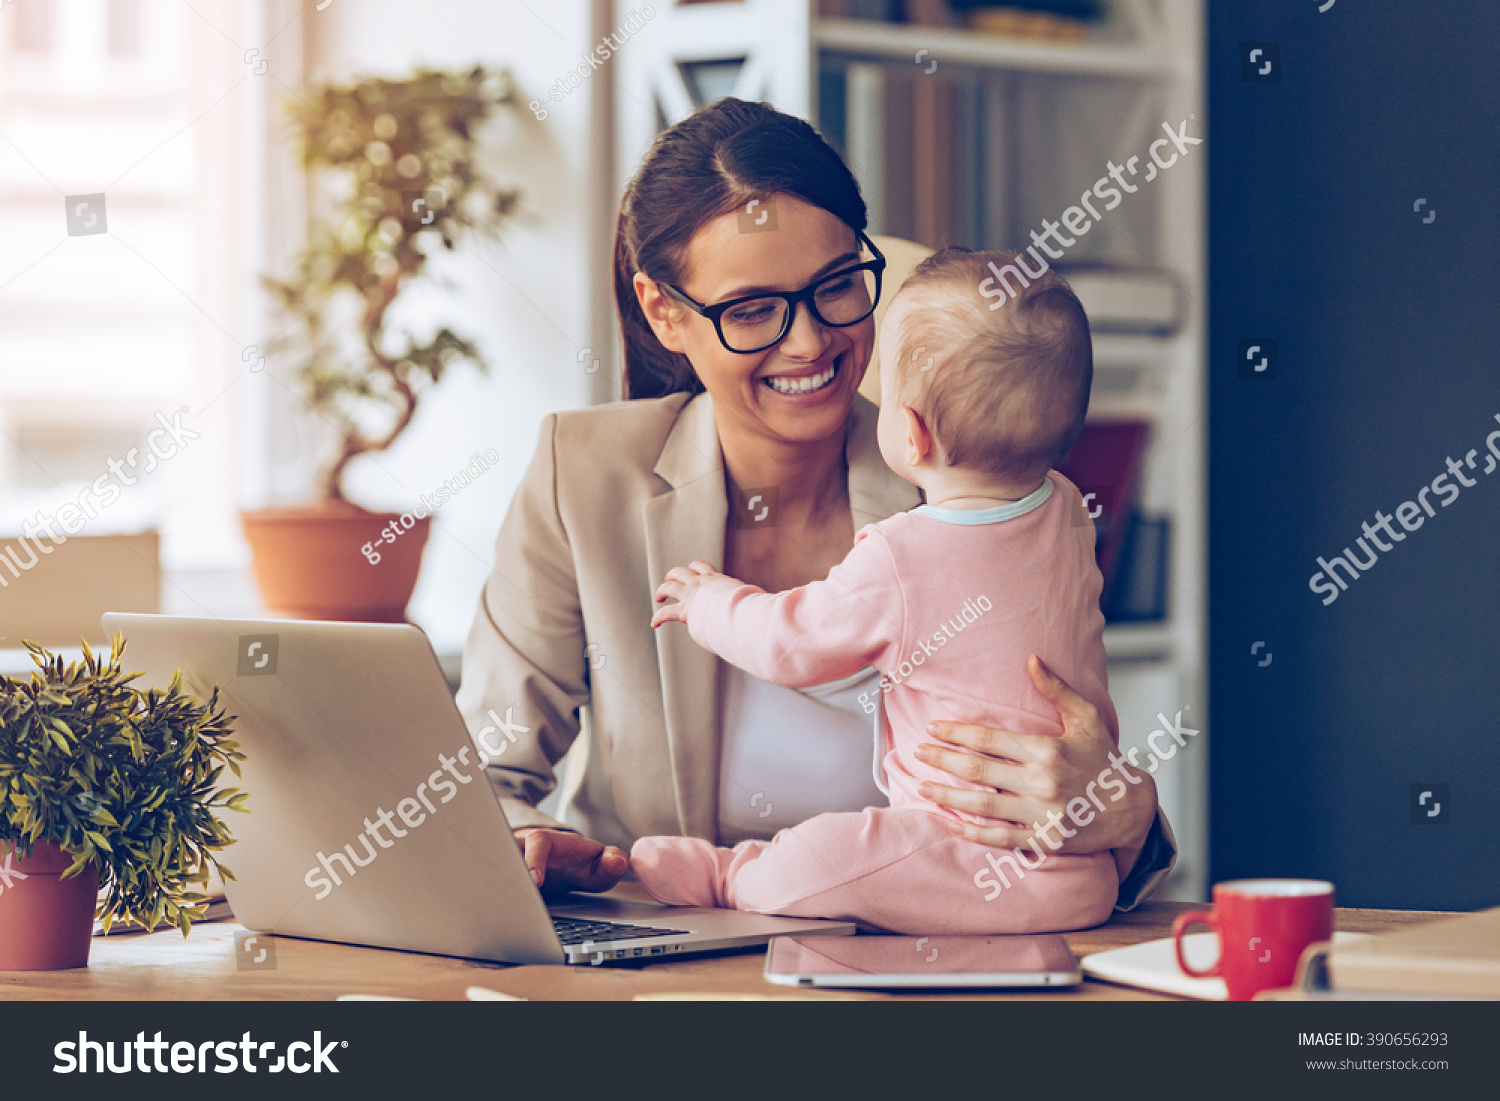 stock-photo-working-together-is-so-fun-cheerful-young-beautiful-businesswoman-looking-at-her-baby-girl-with-390656293.jpg